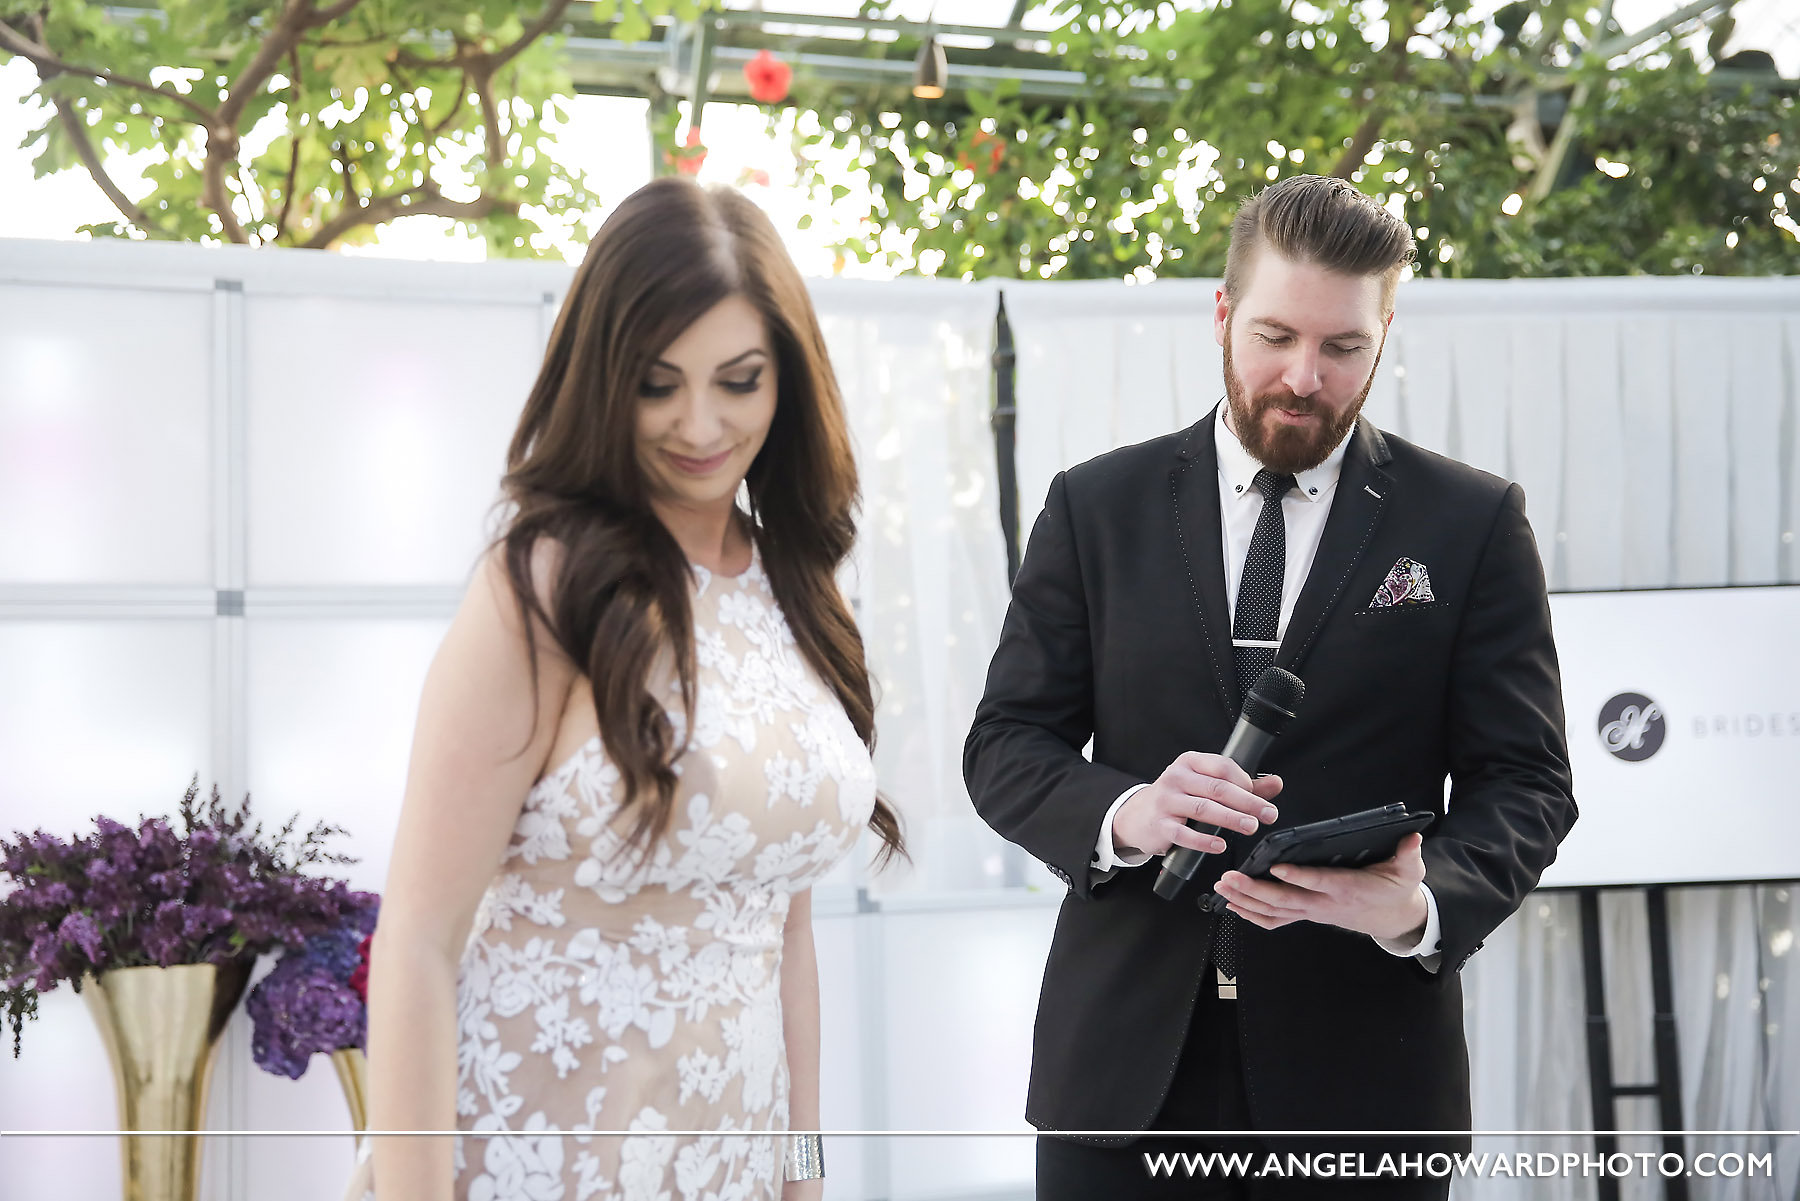 Conn, MC for the night. Mara, event planner extraordinaire. @utahbridemag #UBGWhiteParty Photo credit: Angel Howard Photography